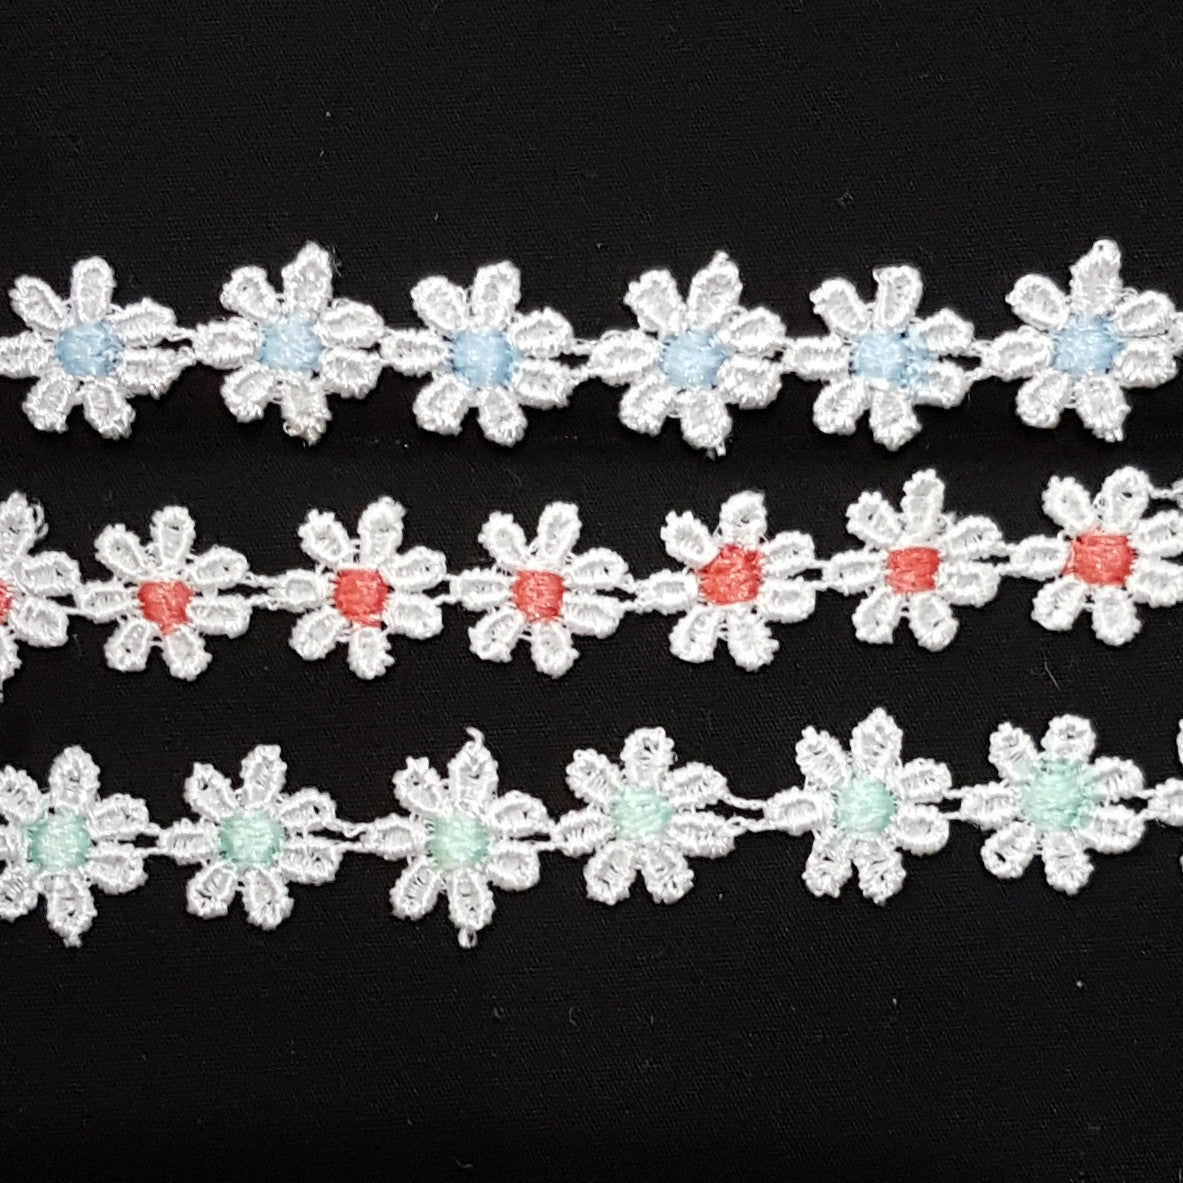 Small 13mm Daisy Chain Flowers White Guipure Lace Trim - by the metre - Vera Fabrics